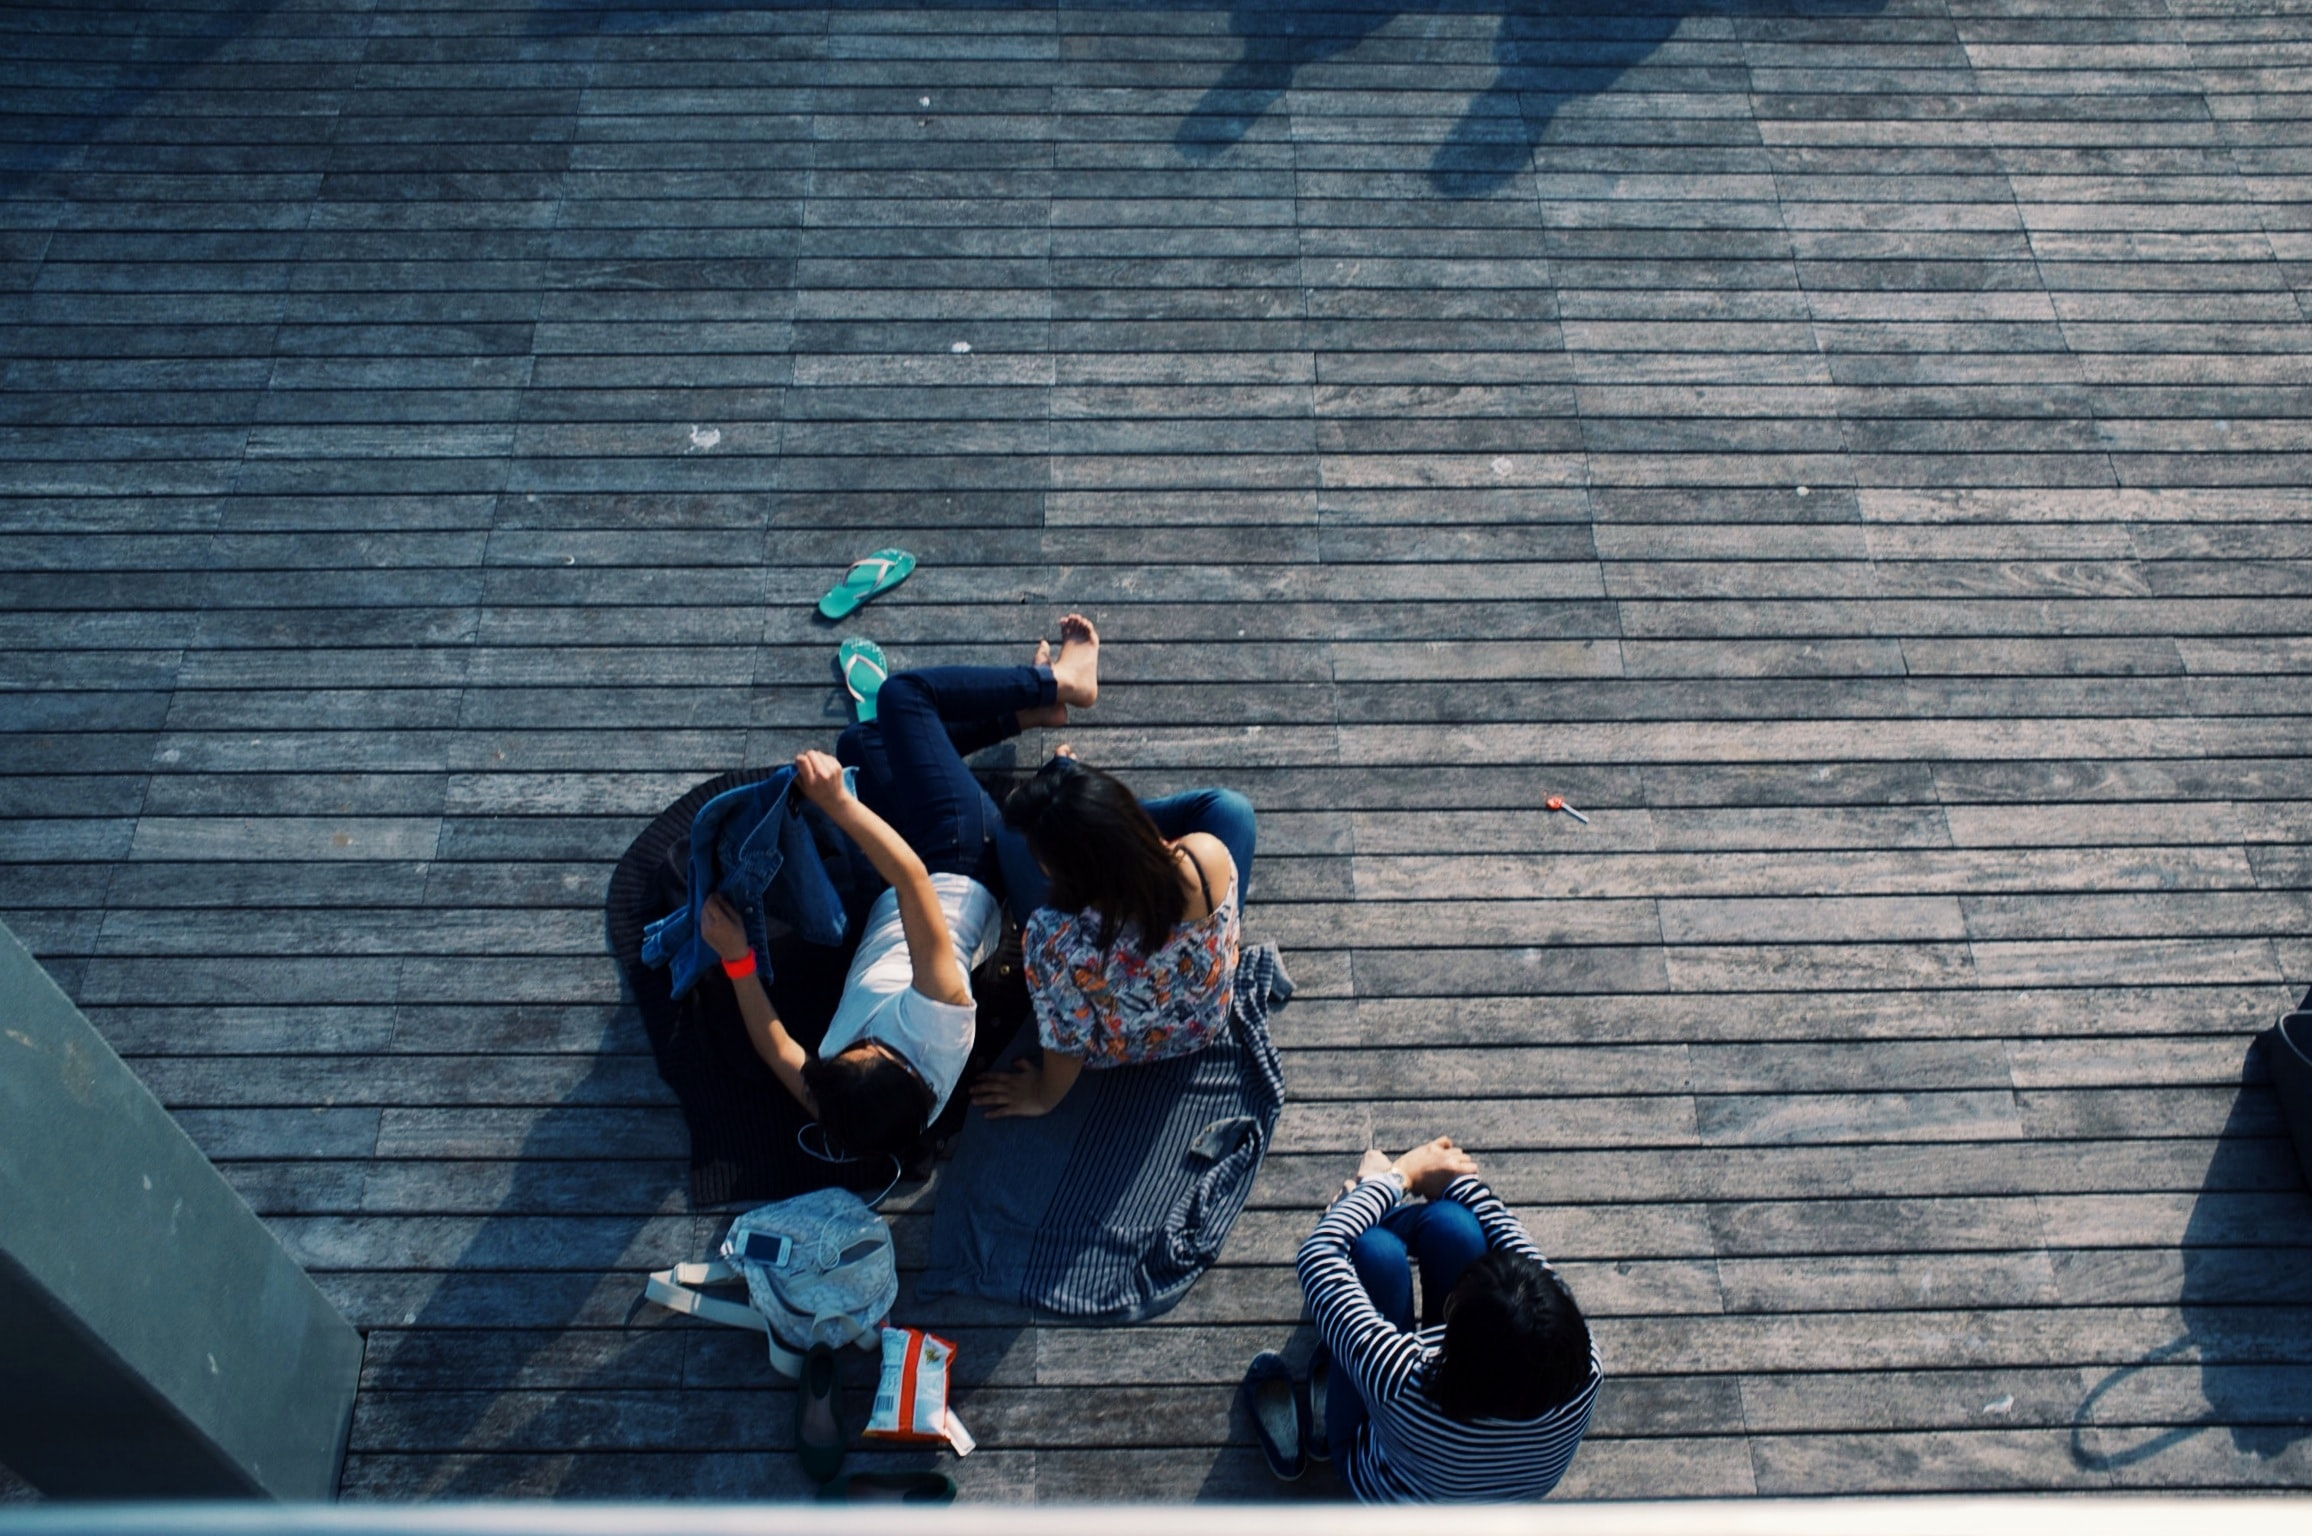 A group of people laying down on a deck, covering themselves with sweaters